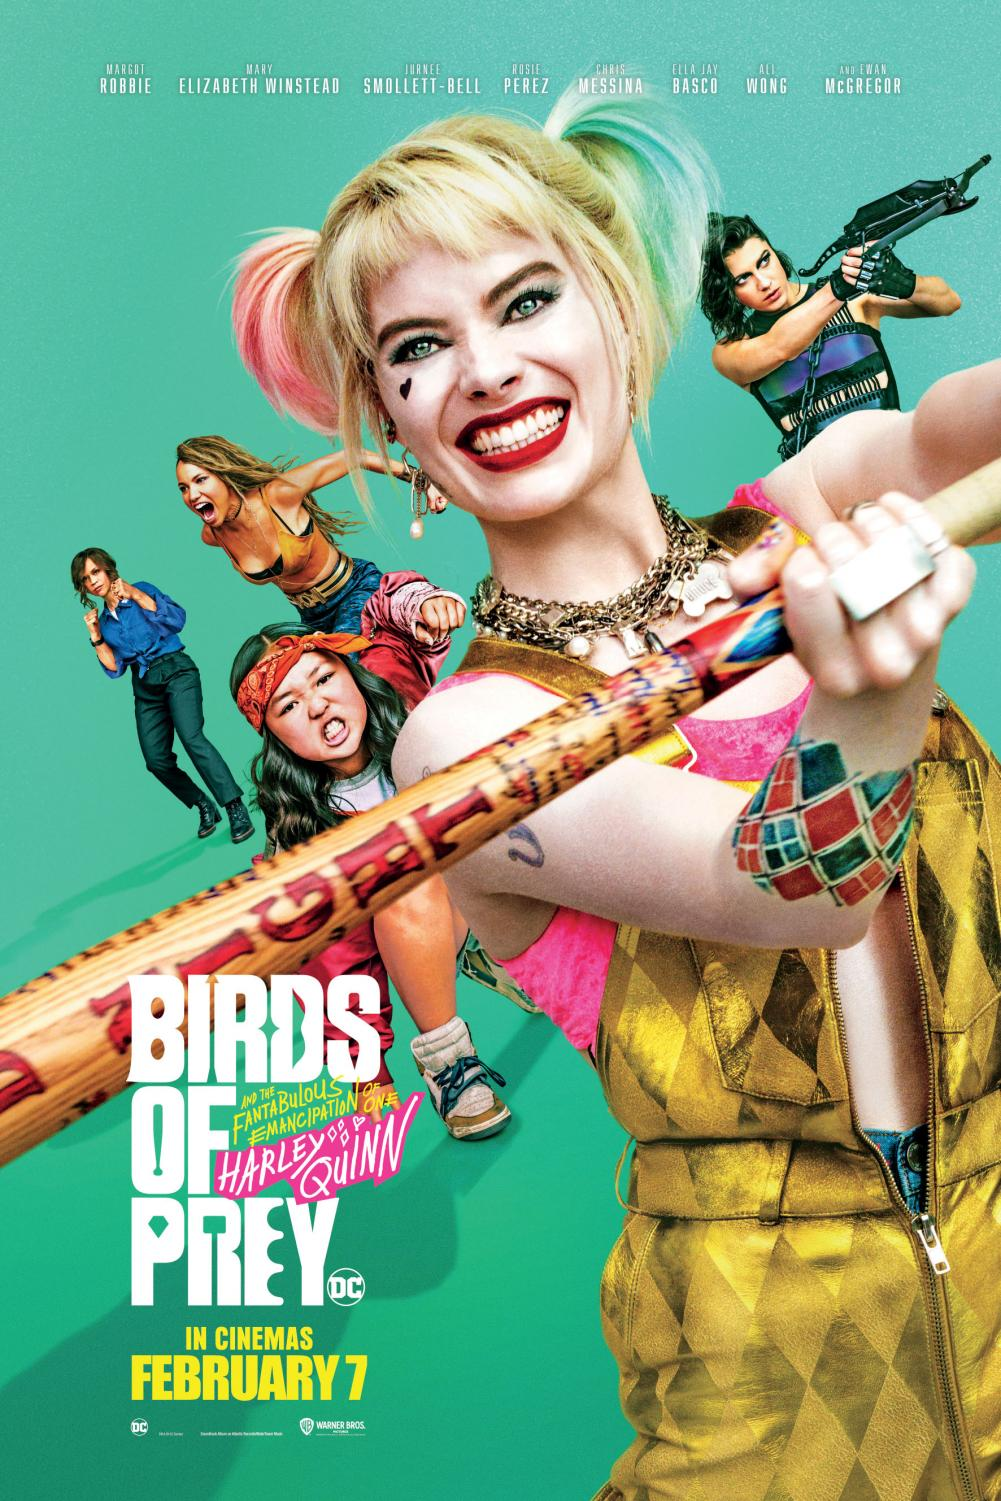 Birds of Prey (and the Fantabulous Emancipation of One Harley Quinn) is an upcoming American superhero film based on the DC Comics team Birds of Prey.